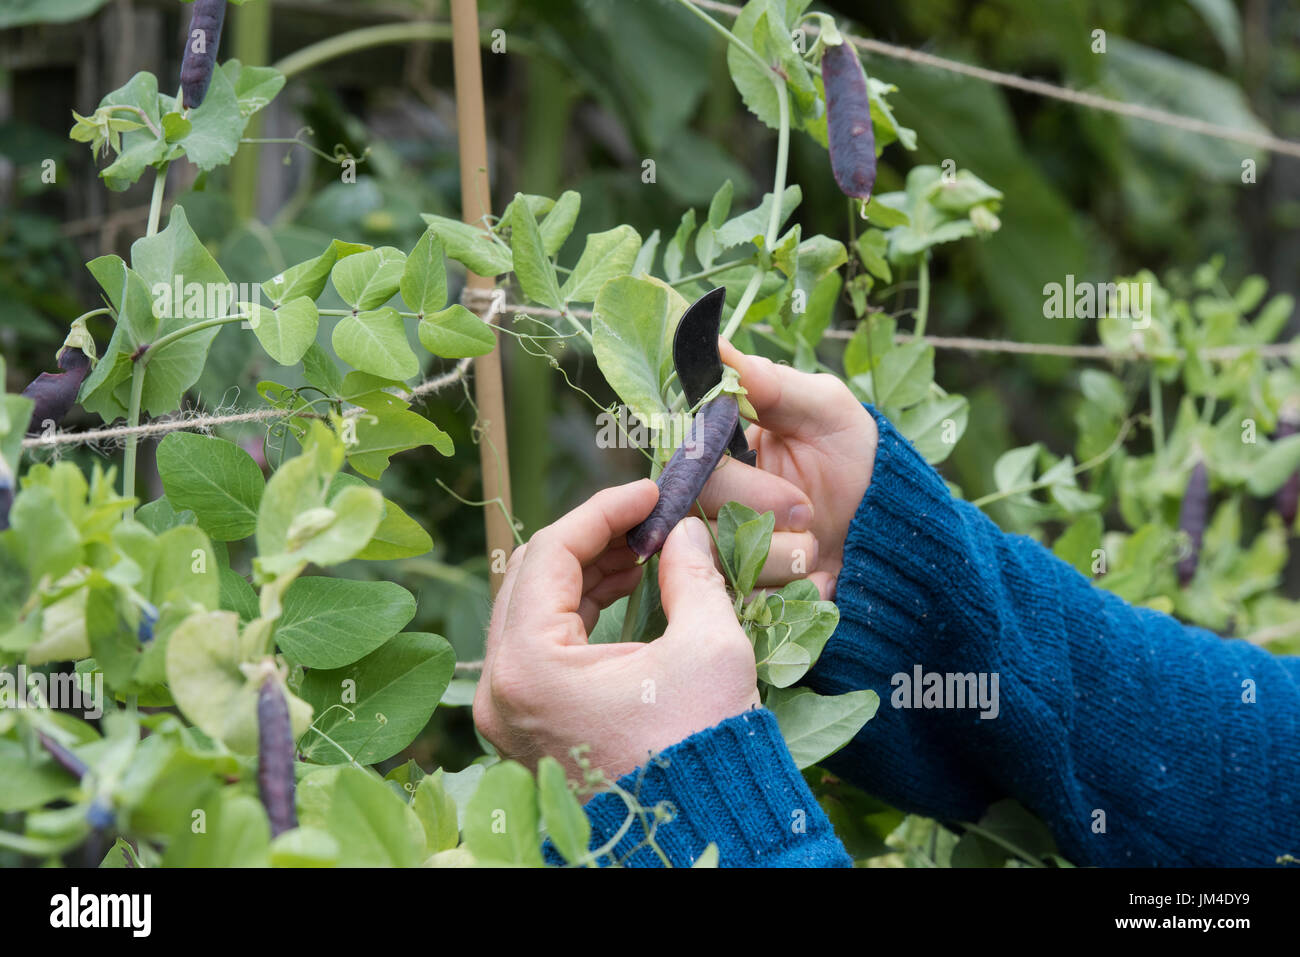 Pisum sativum. Gardener using an old gardeners pocket knife to cut Purple Podded pea pods from the plant in an english vegetable garden. UK - Stock Image